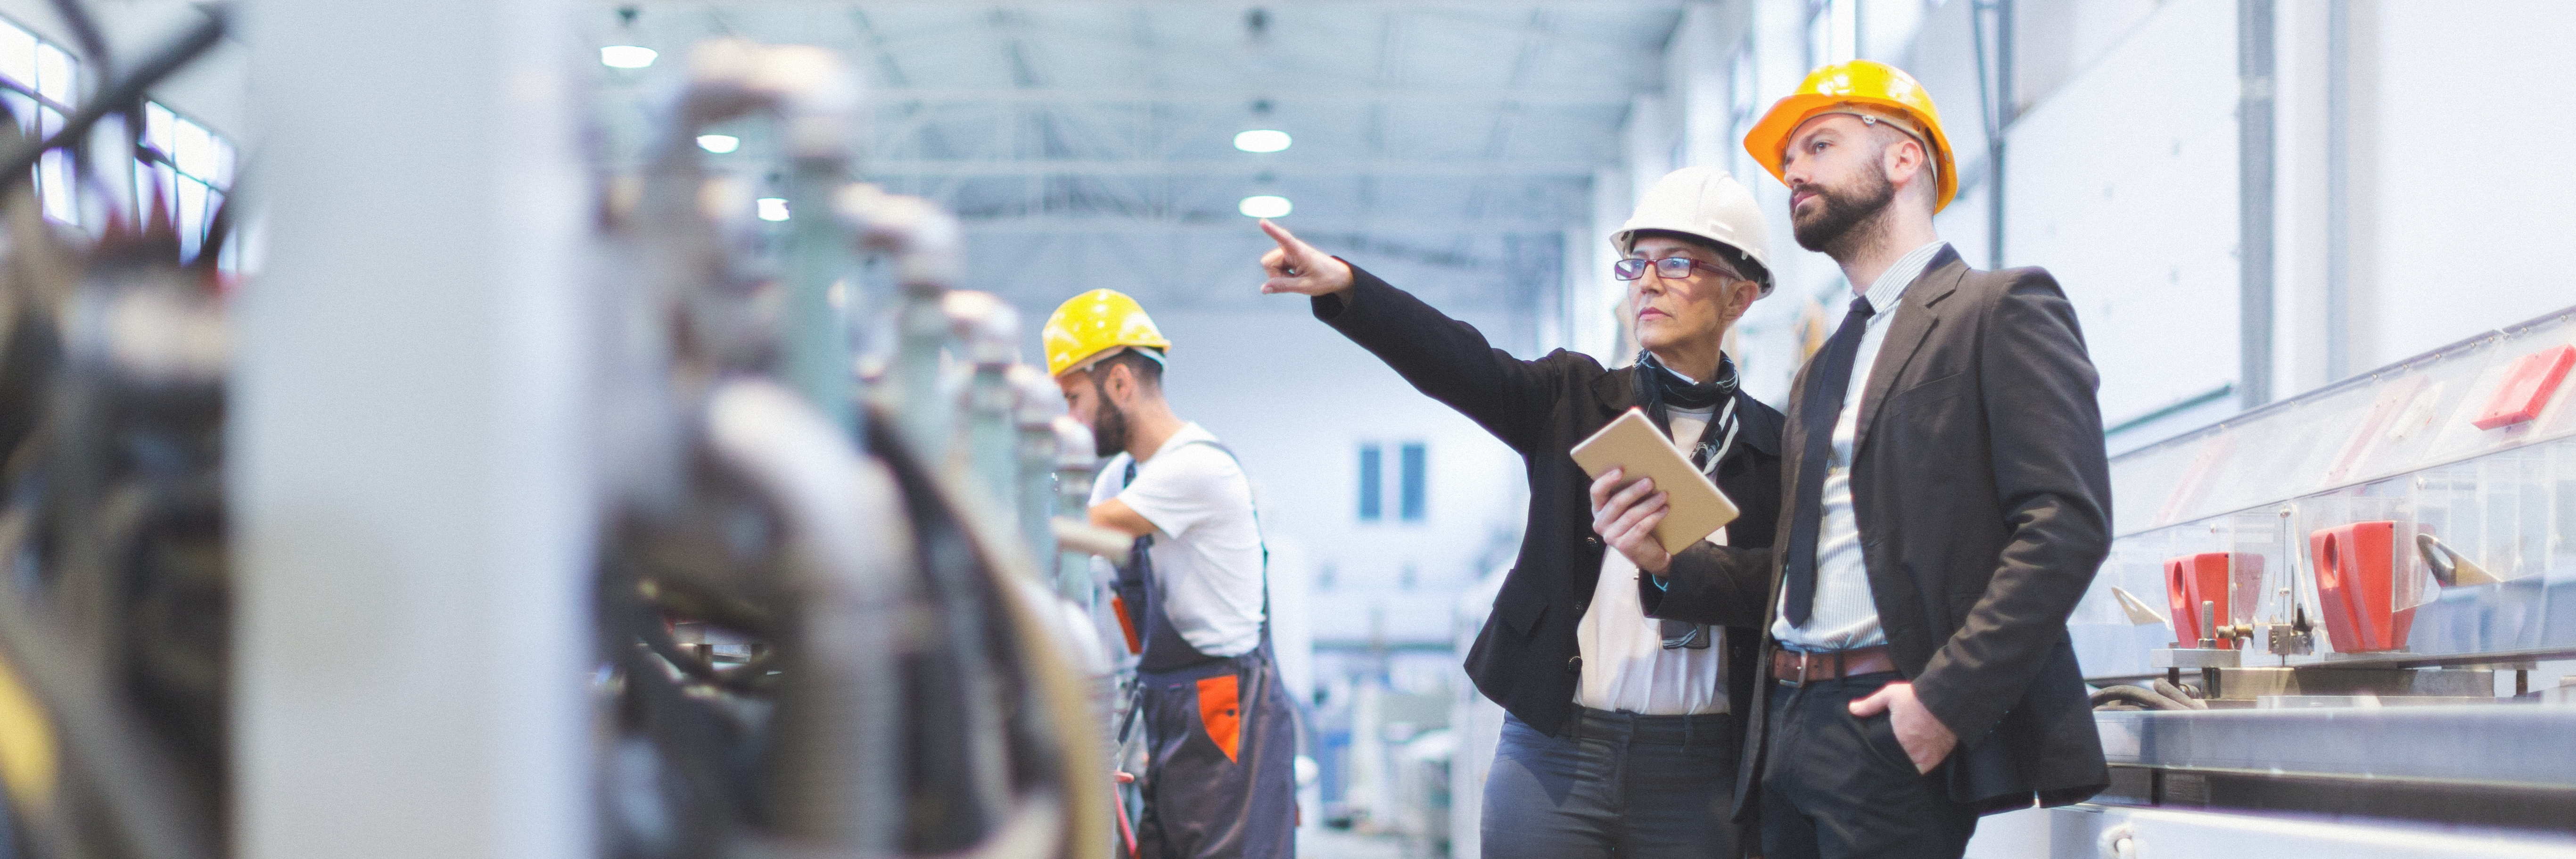 Careers - The Opportunities - Man and woman inspect industrial work place